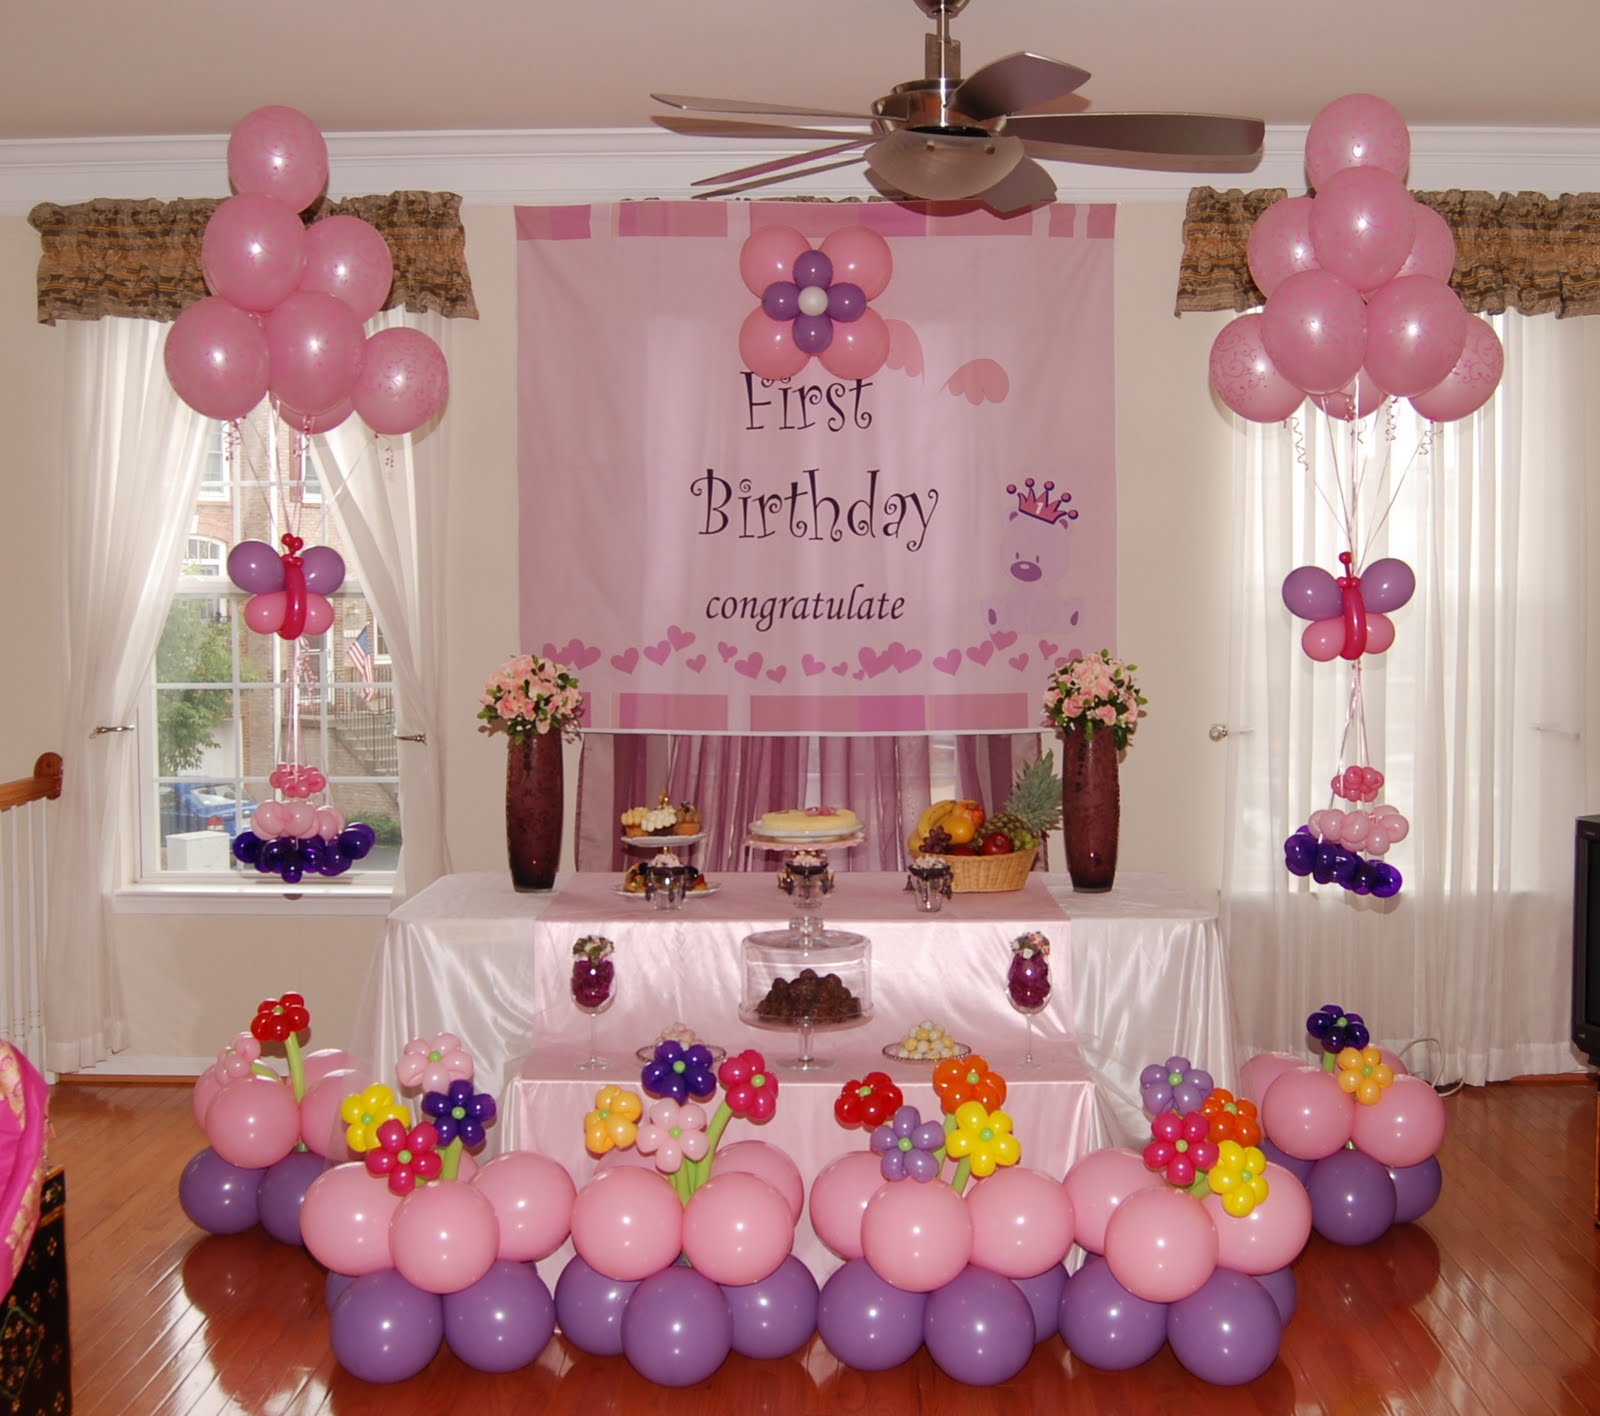 How to create a birthday party checklist great party ideas for 1st birthday party decoration ideas at home